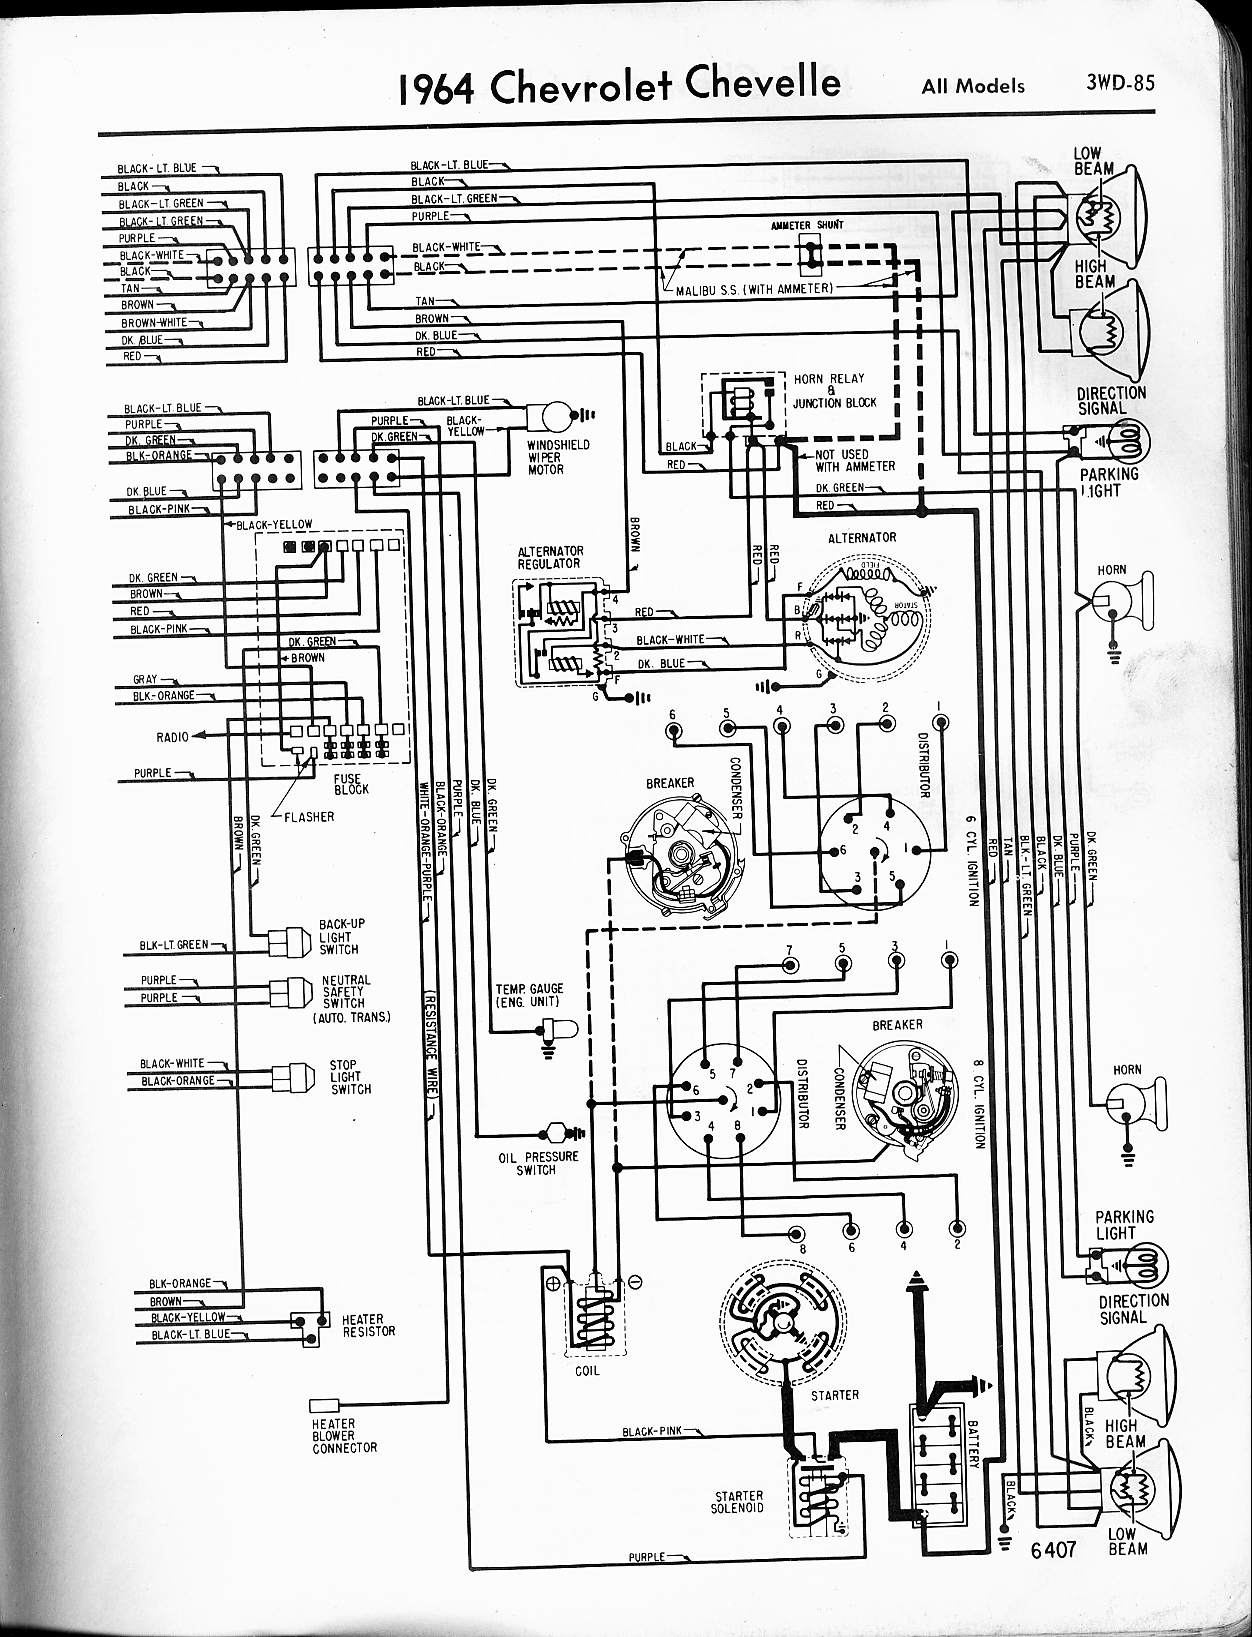 chevelle wiring diagram image wiring diagram chevelle ignition switch wiring diagram ez go wiring schematic on 1970 chevelle wiring diagram